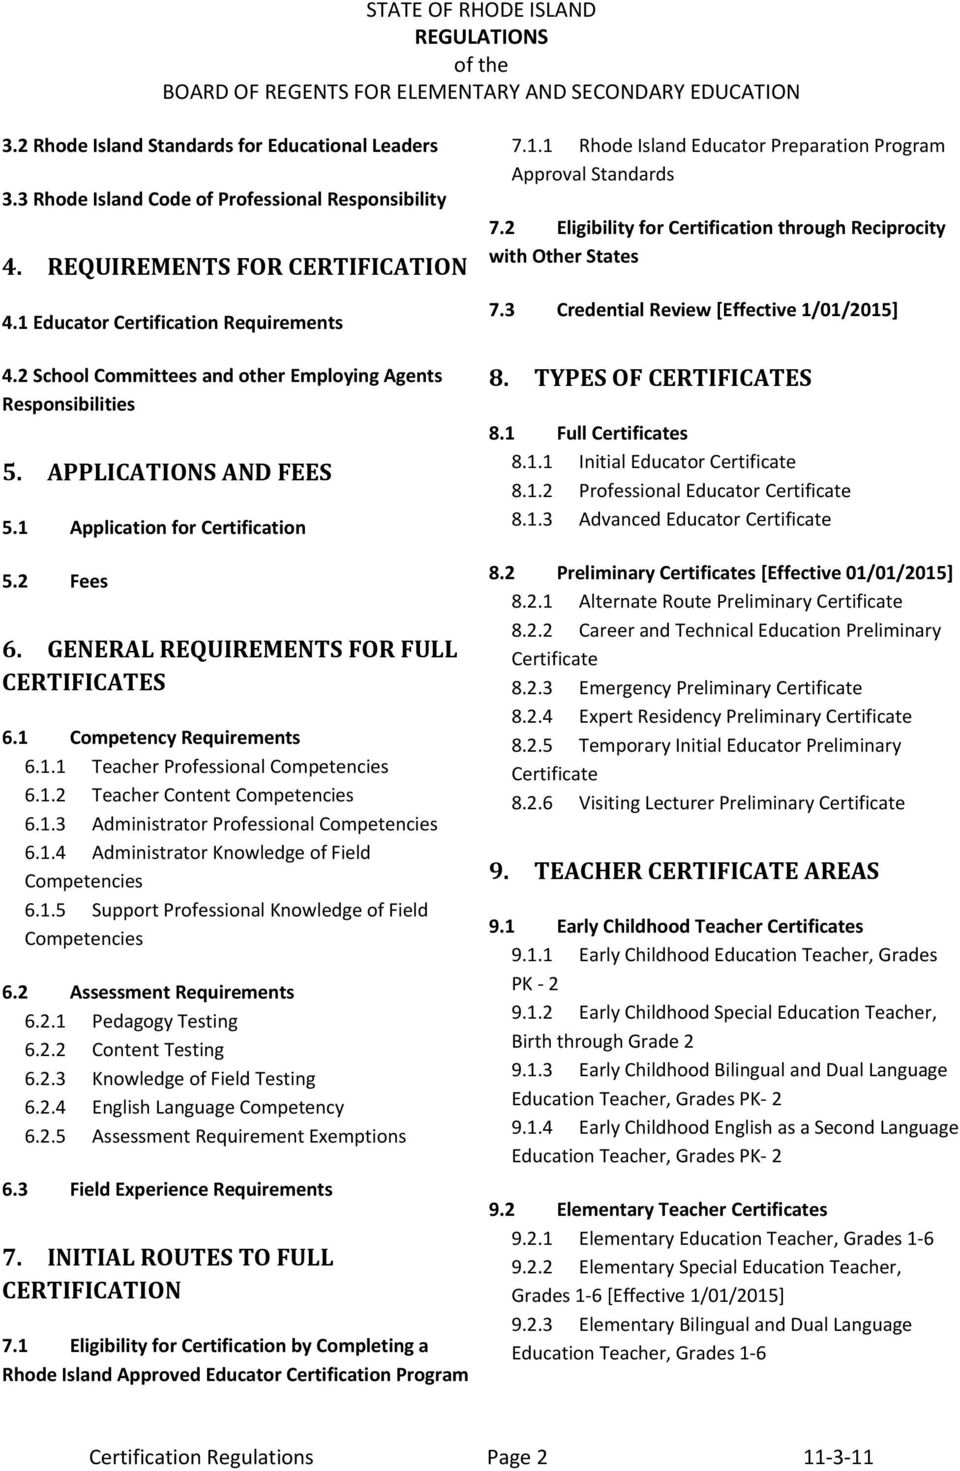 1 Competency Requirements 6.1.1 Teacher Professional Competencies 6.1.2 Teacher Content Competencies 6.1.3 Administrator Professional Competencies 6.1.4 Administrator Knowledge of Field Competencies 6.